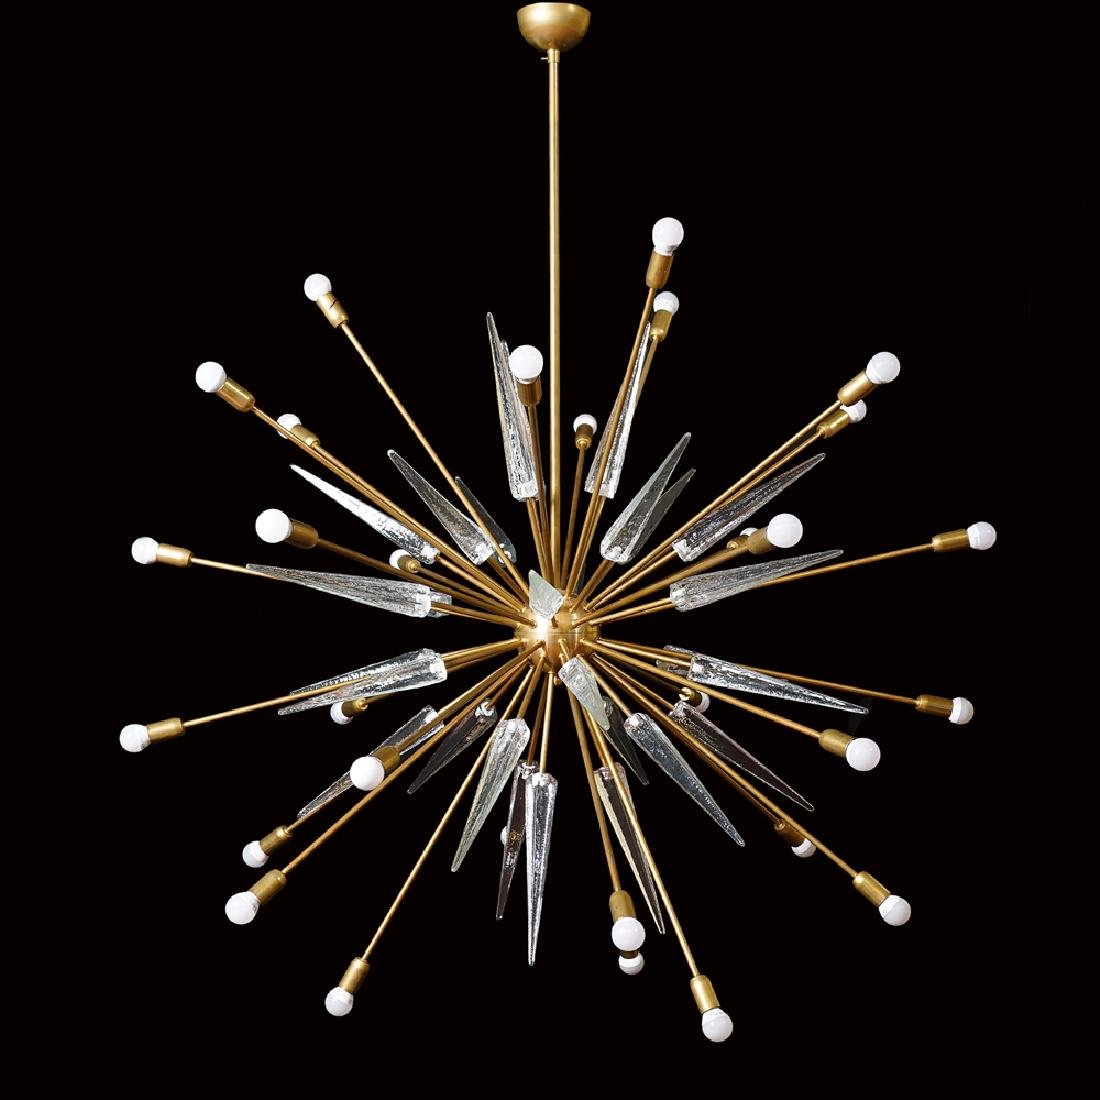 Sputnik model chandelier, Italy, 20th century